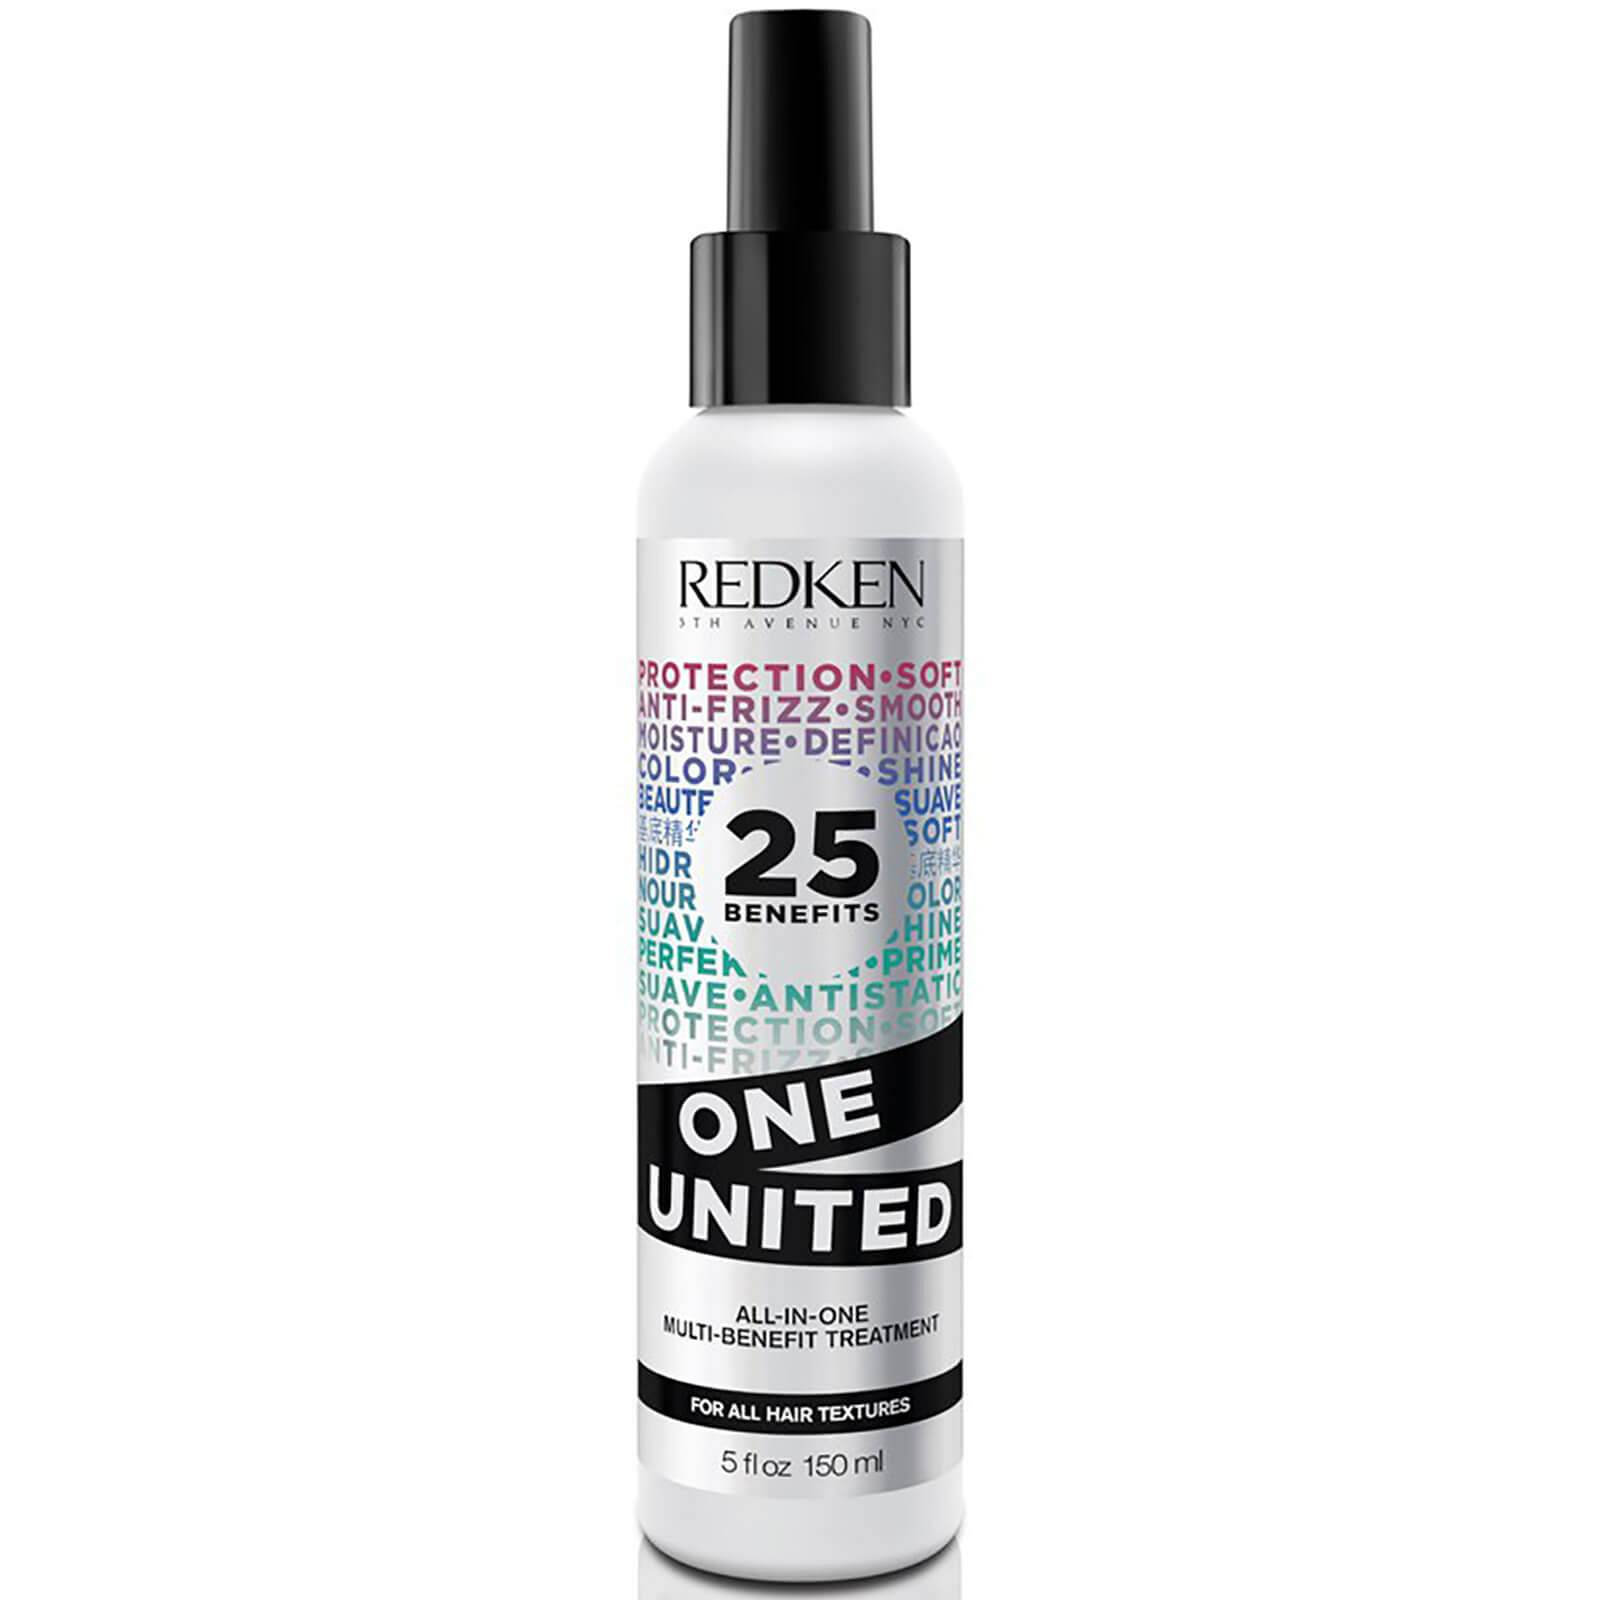 Redken One United Multi-Benefit Treatment (150 ml)